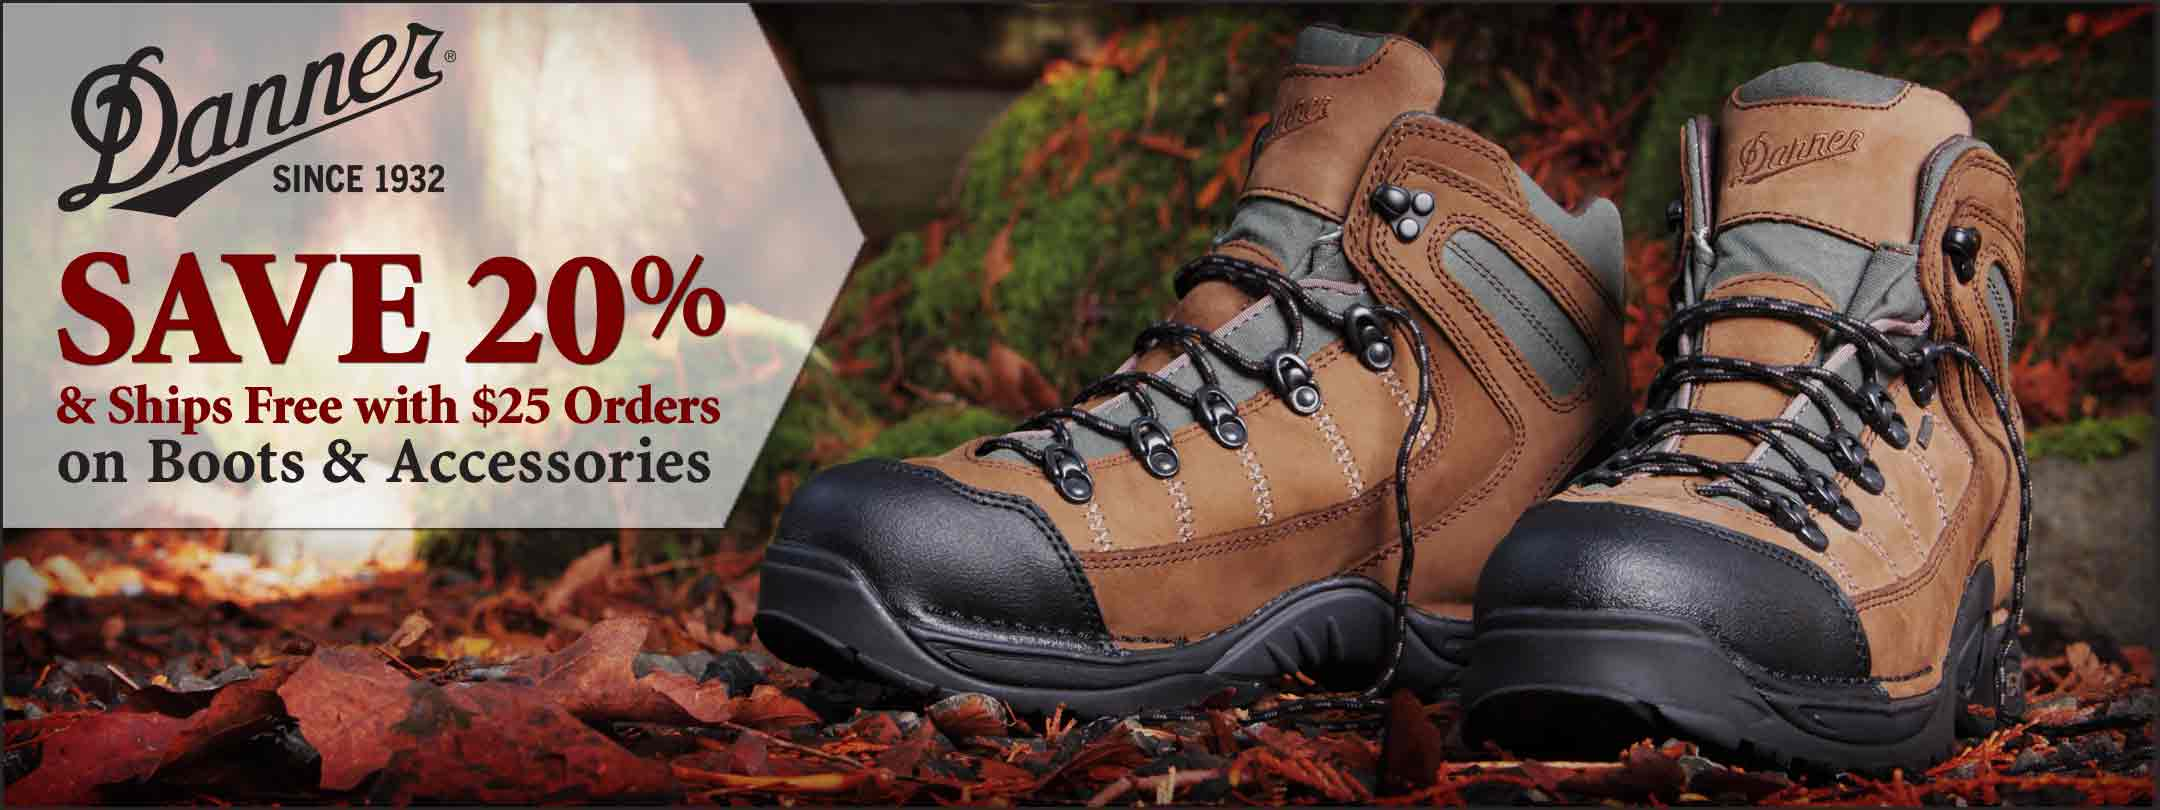 Danner - Perfect Balance of Comfort, Support & Durability